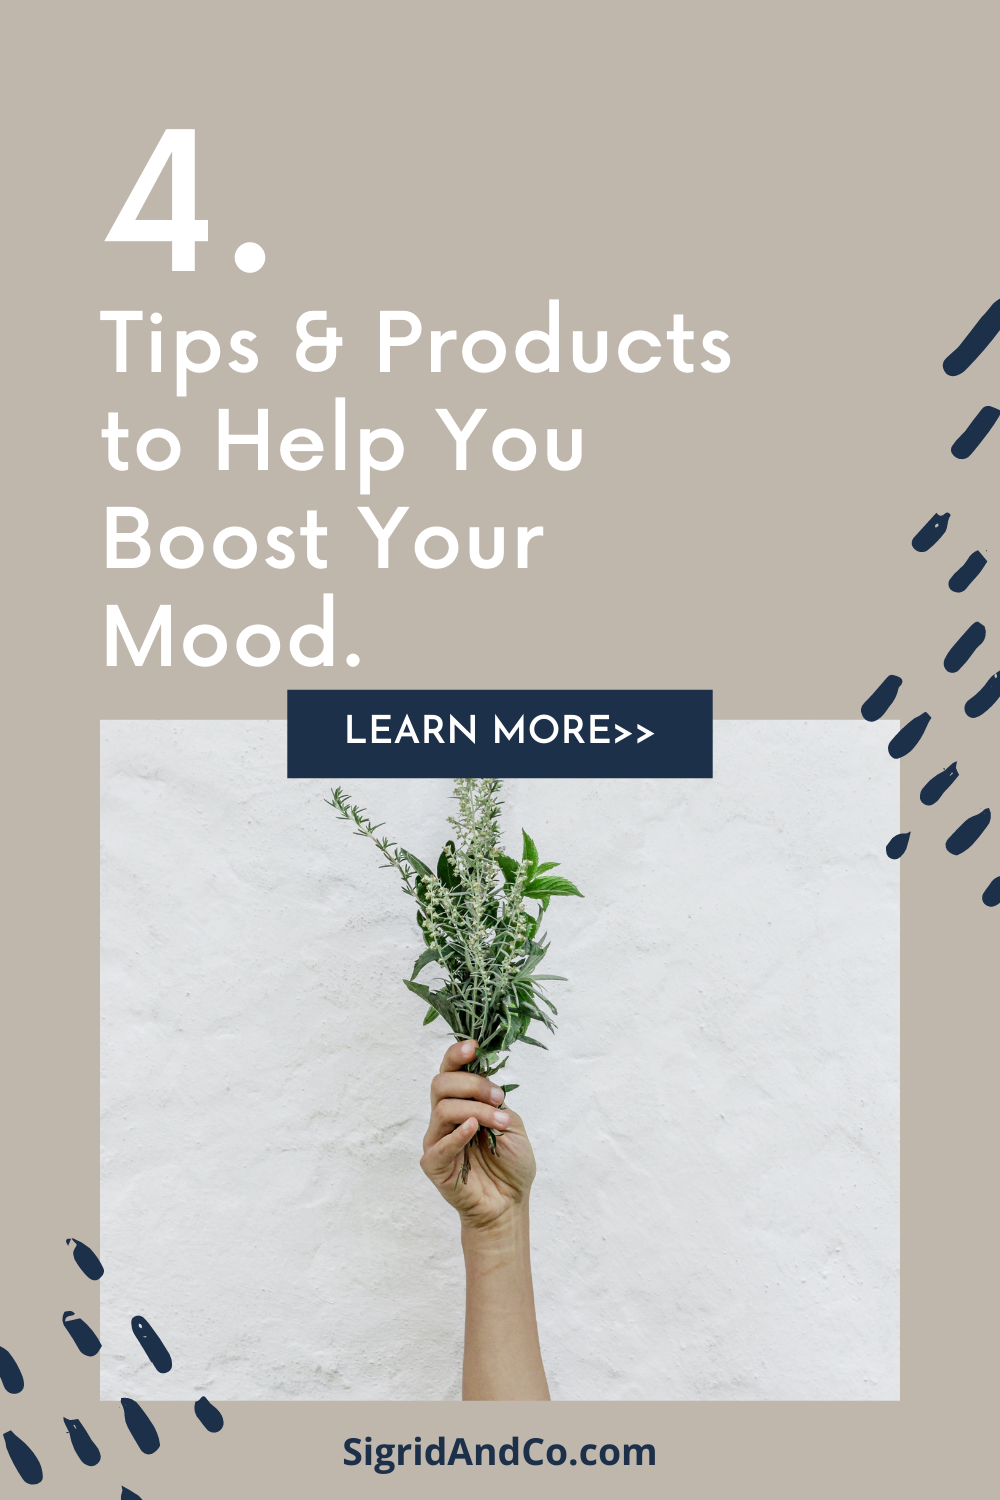 Wellness At Home: 4 Products and Tips to Help Your Boost Your Mood